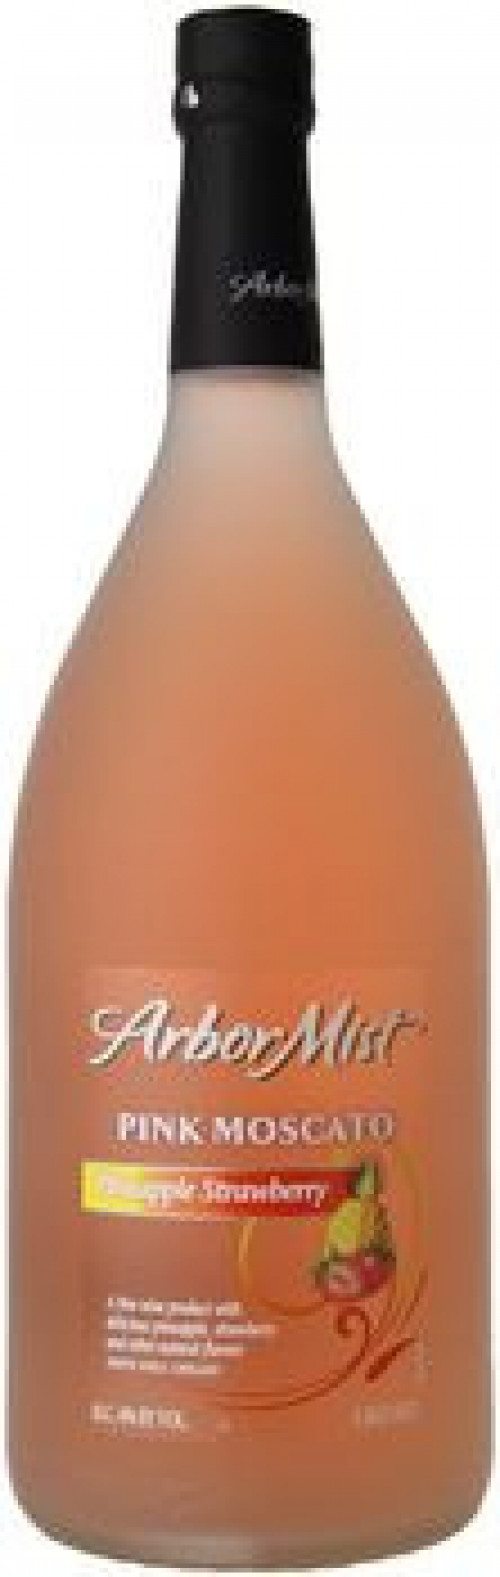 Arbor Mist Pineapple Strawberry Pink Moscato 1.5 Ltr